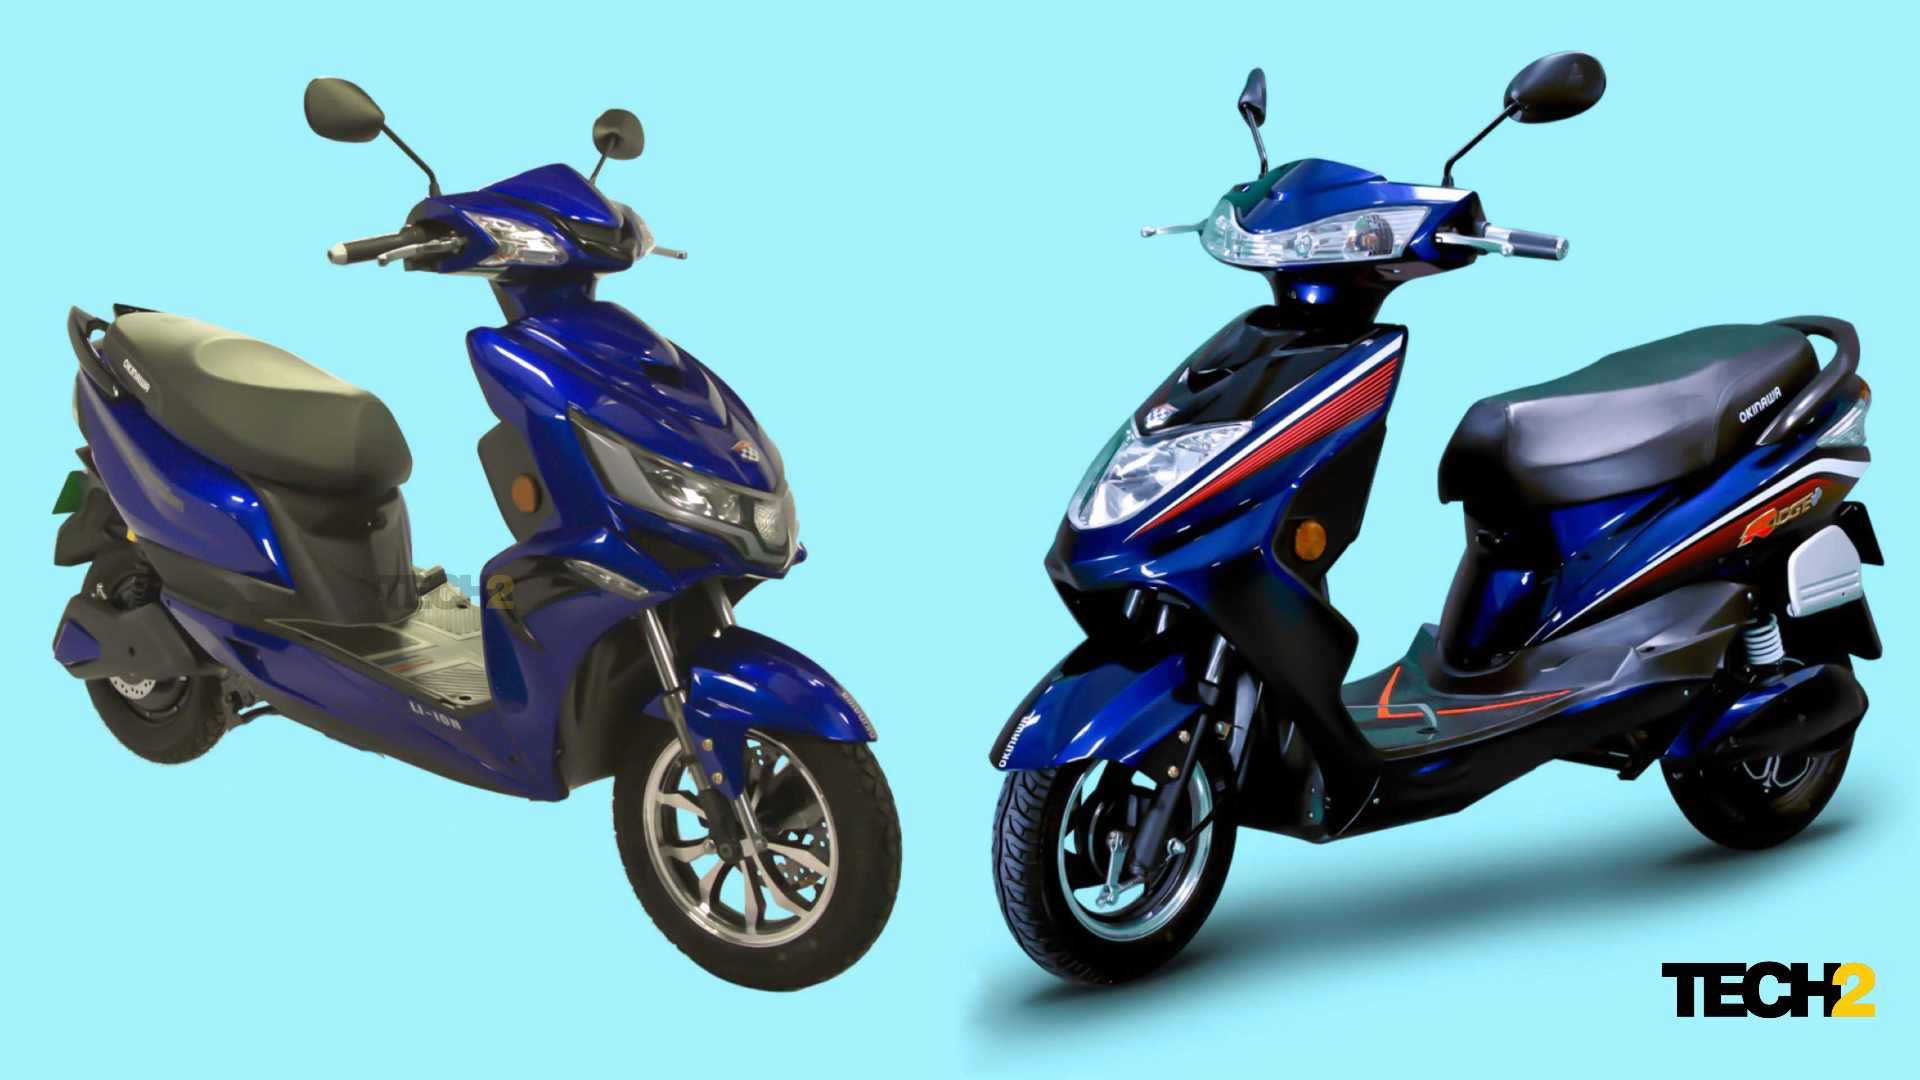 Okinawa's high-speed electric scooters now start as low as Rs 44,391- Technology News, FP